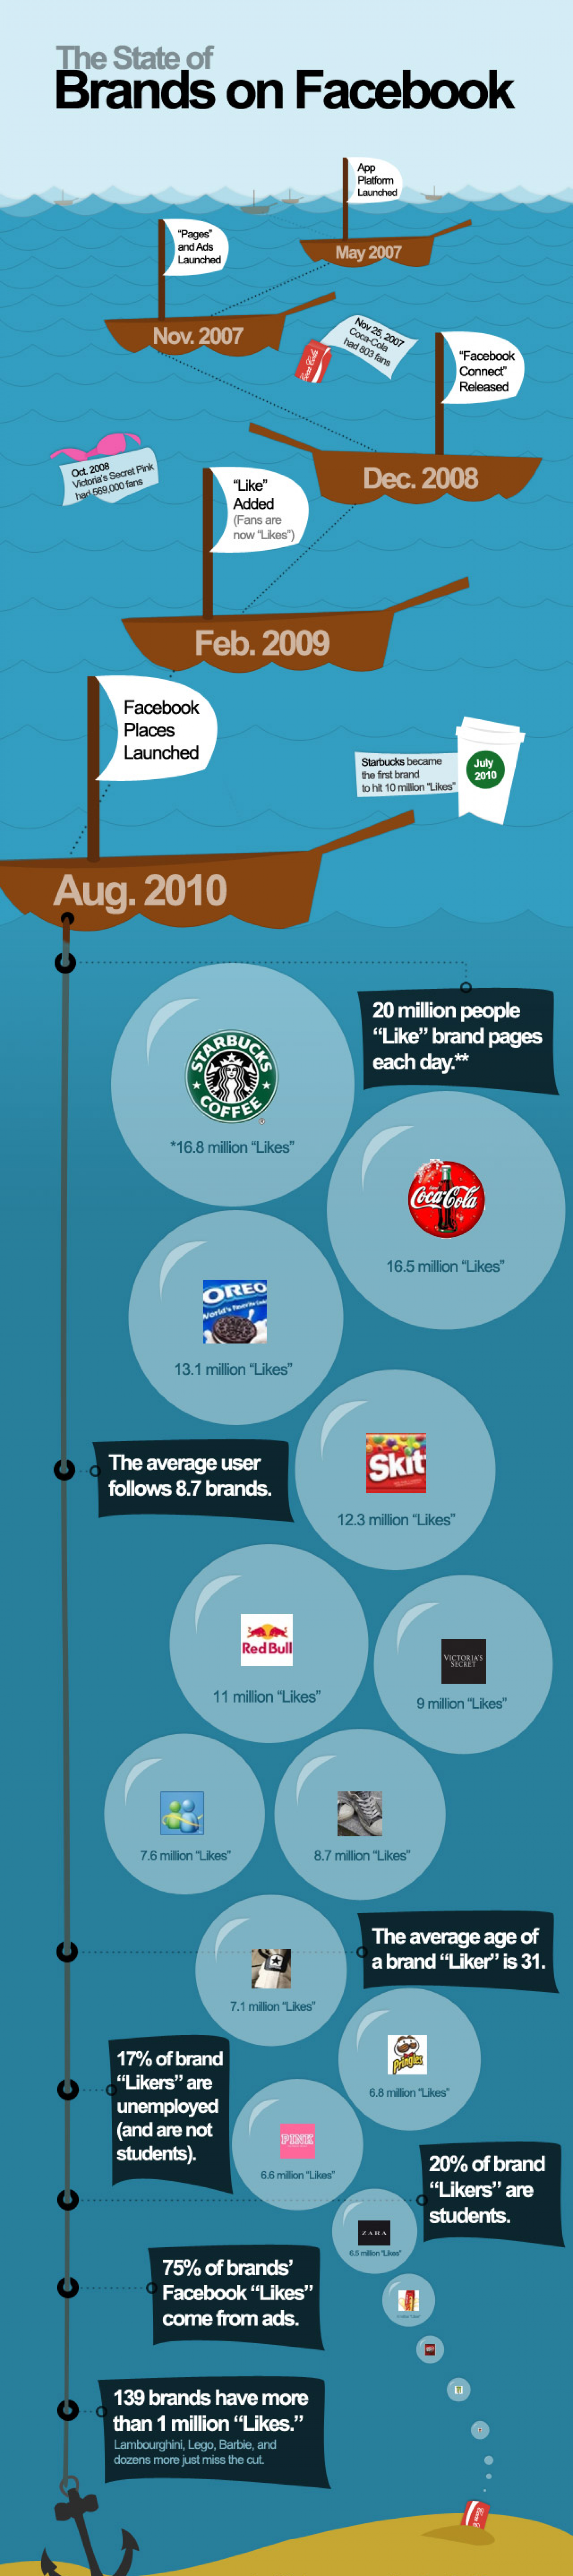 The State of Brands on Facebook Infographic